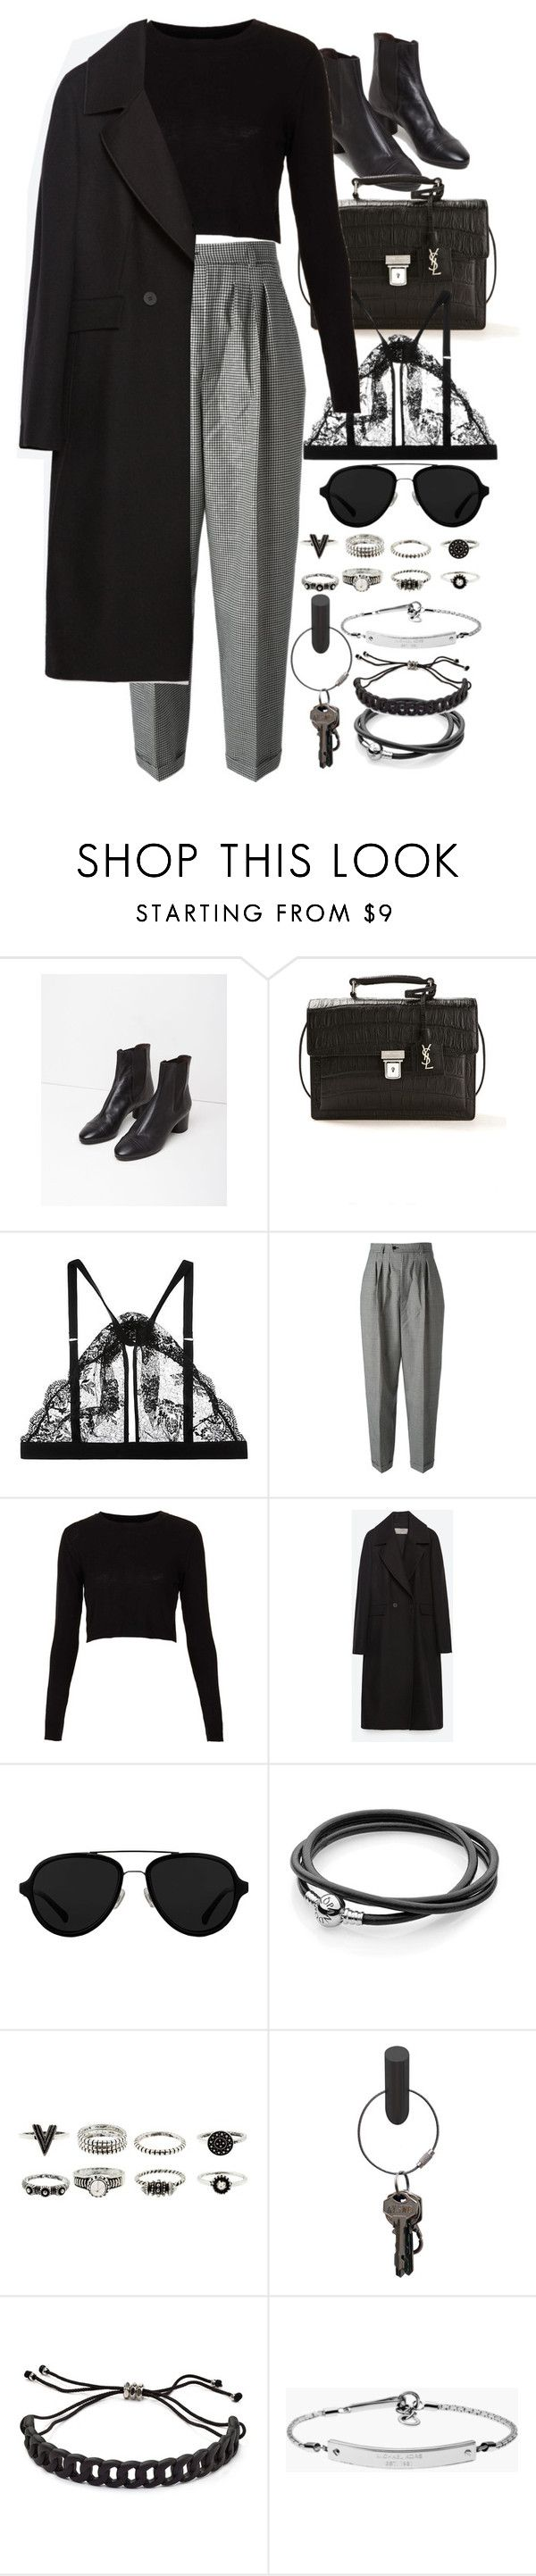 """""""Untitled #8411"""" by nikka-phillips ❤ liked on Polyvore featuring Isabel Marant, Yves Saint Laurent, Mimi Holliday by Damaris, Topshop, Zara, 3.1 Phillip Lim, PA Design, Marc by Marc Jacobs and MICHAEL Michael Kors"""